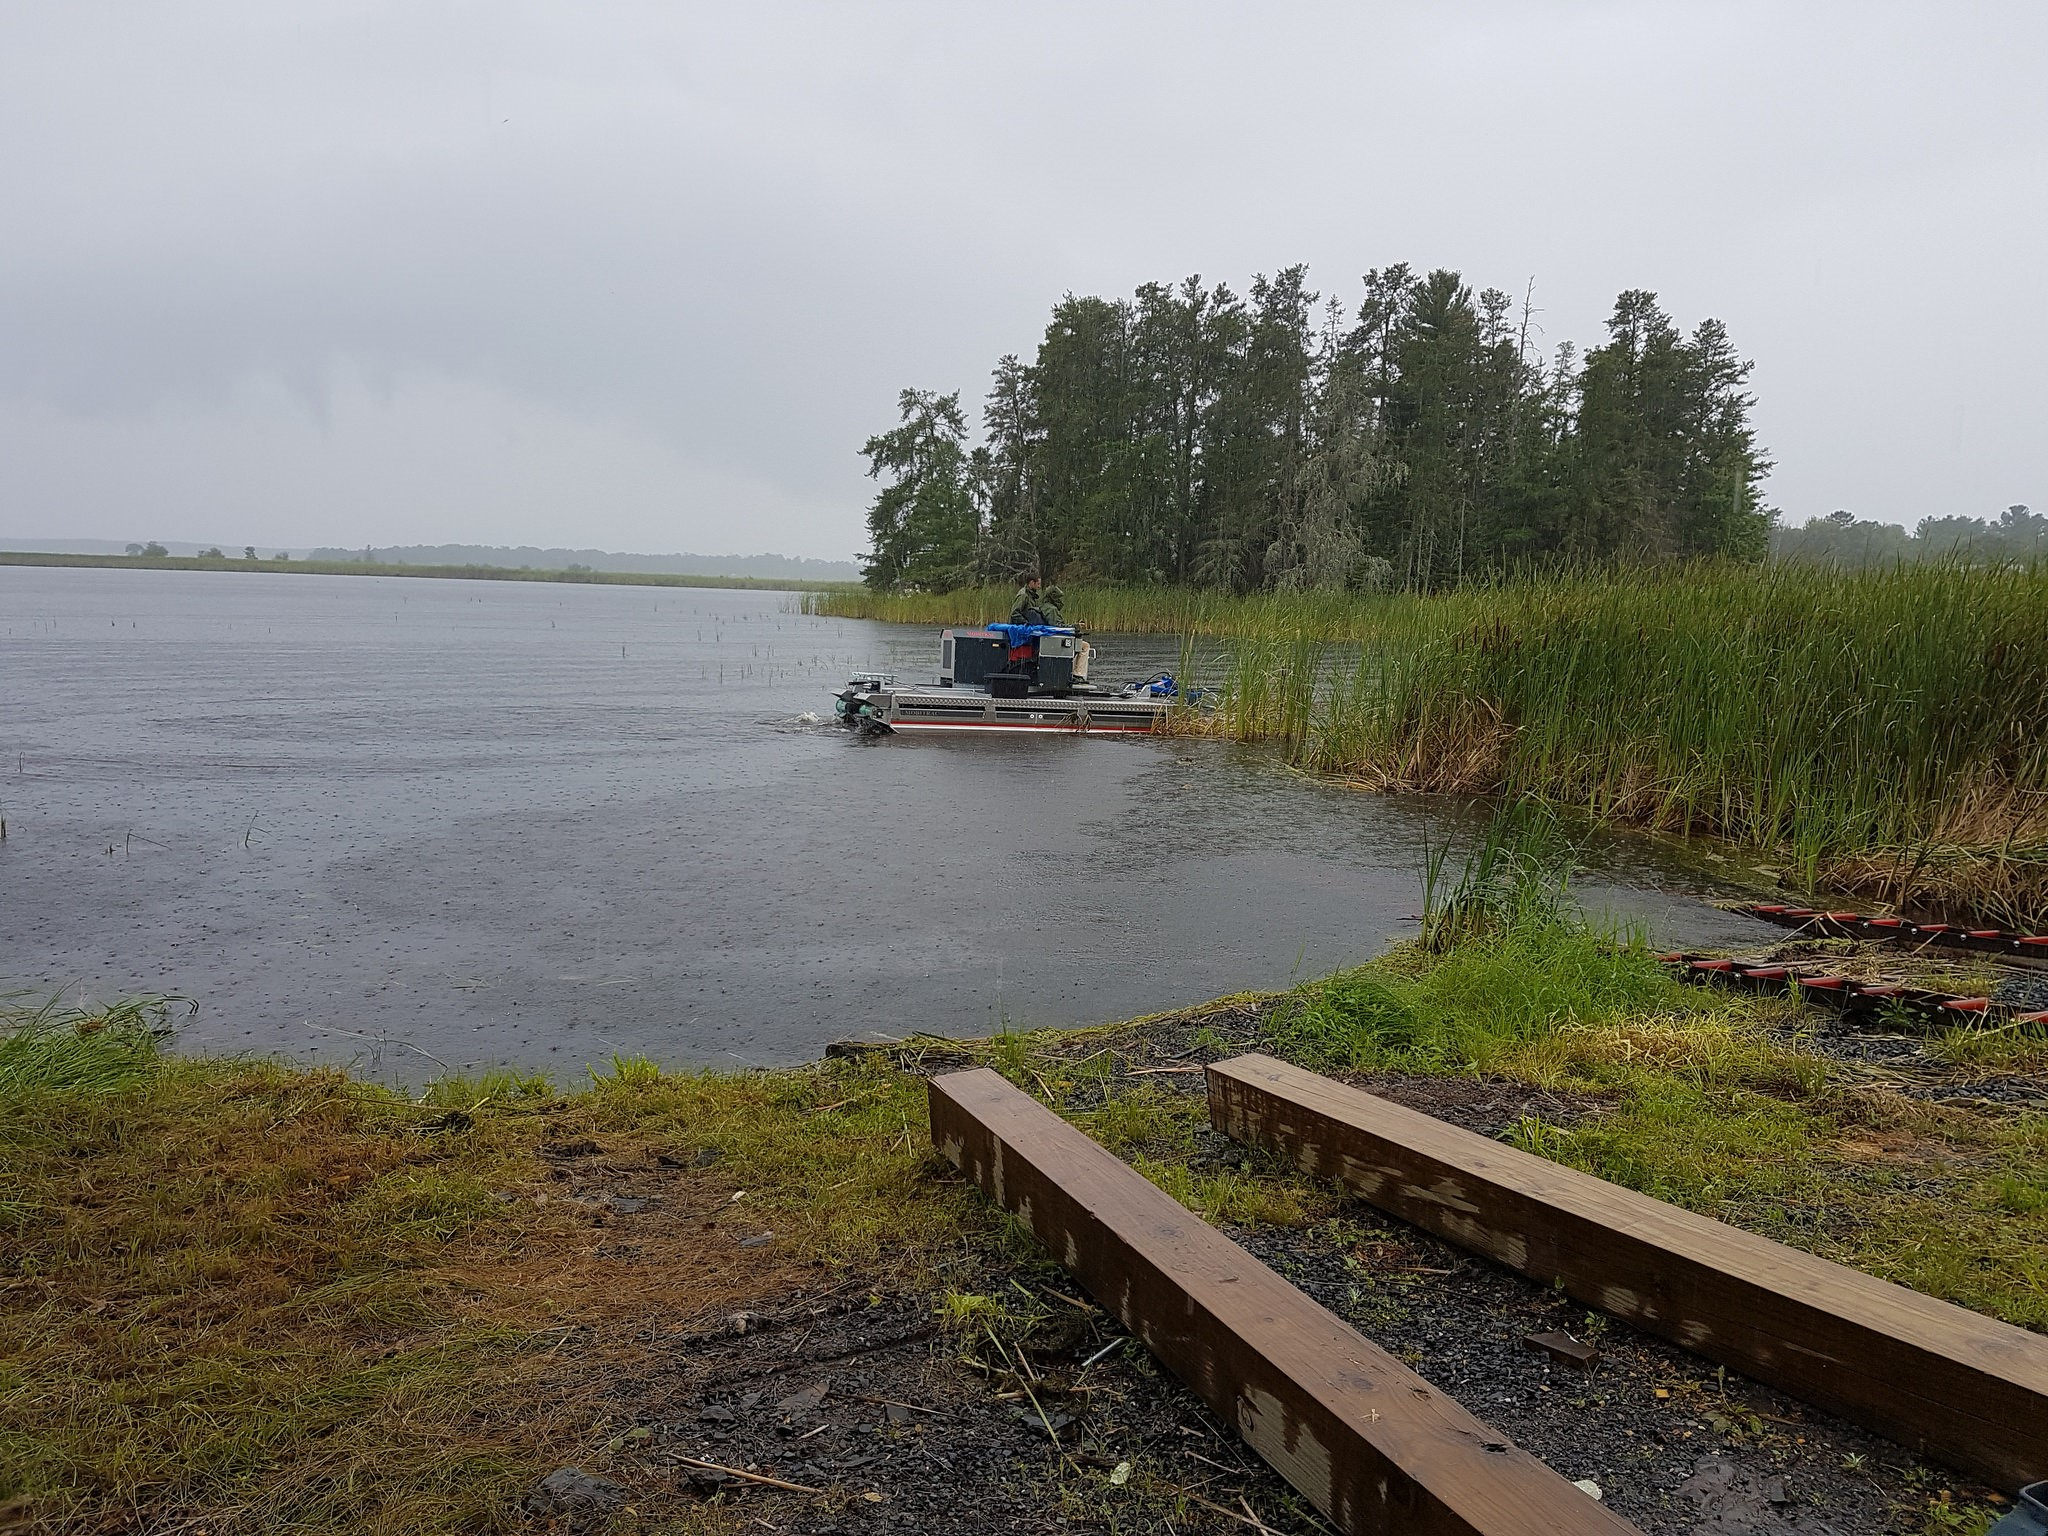 A harvesting machine moves to remove the invasive hybrid cattail plants in Voyageurs National Park August 2017. Credit: IJC